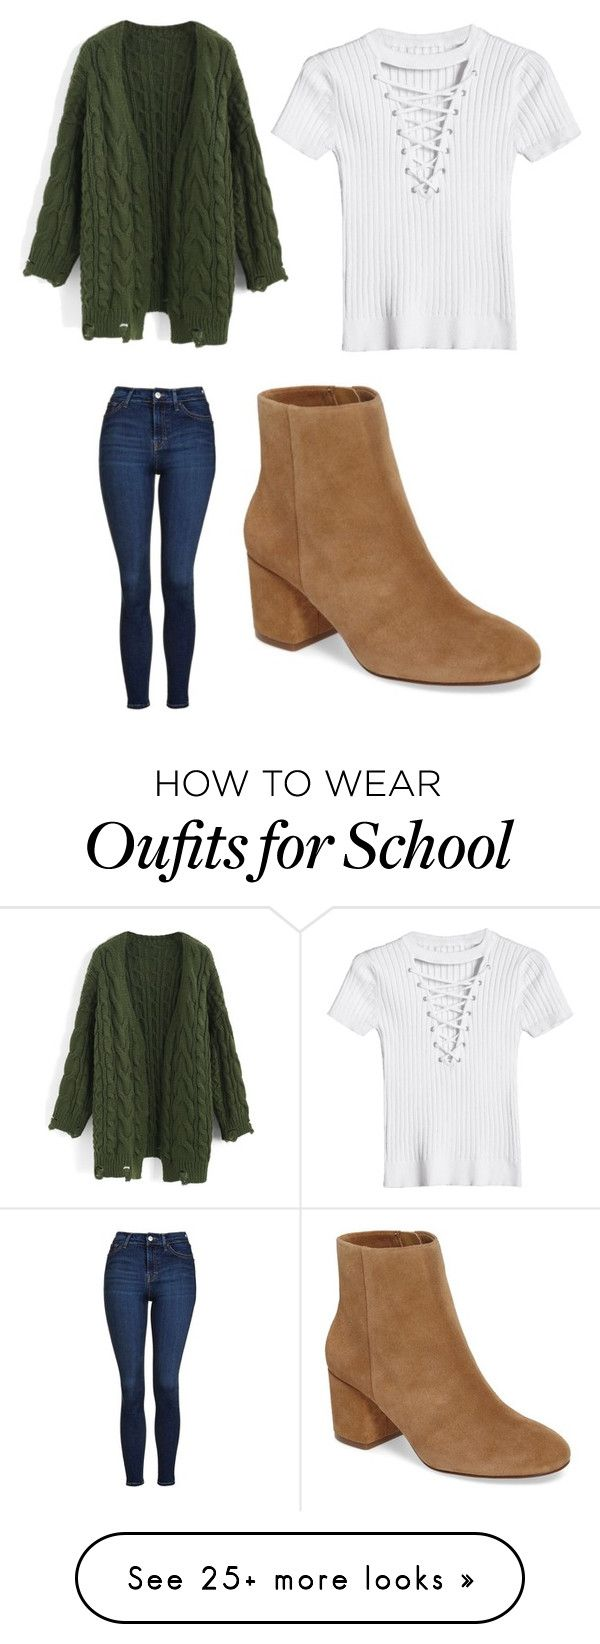 """still dredingng school... stupid auto correct"" by tennisplayingmaniac on Polyvore featuring Chicwish, Topshop and Splendid"